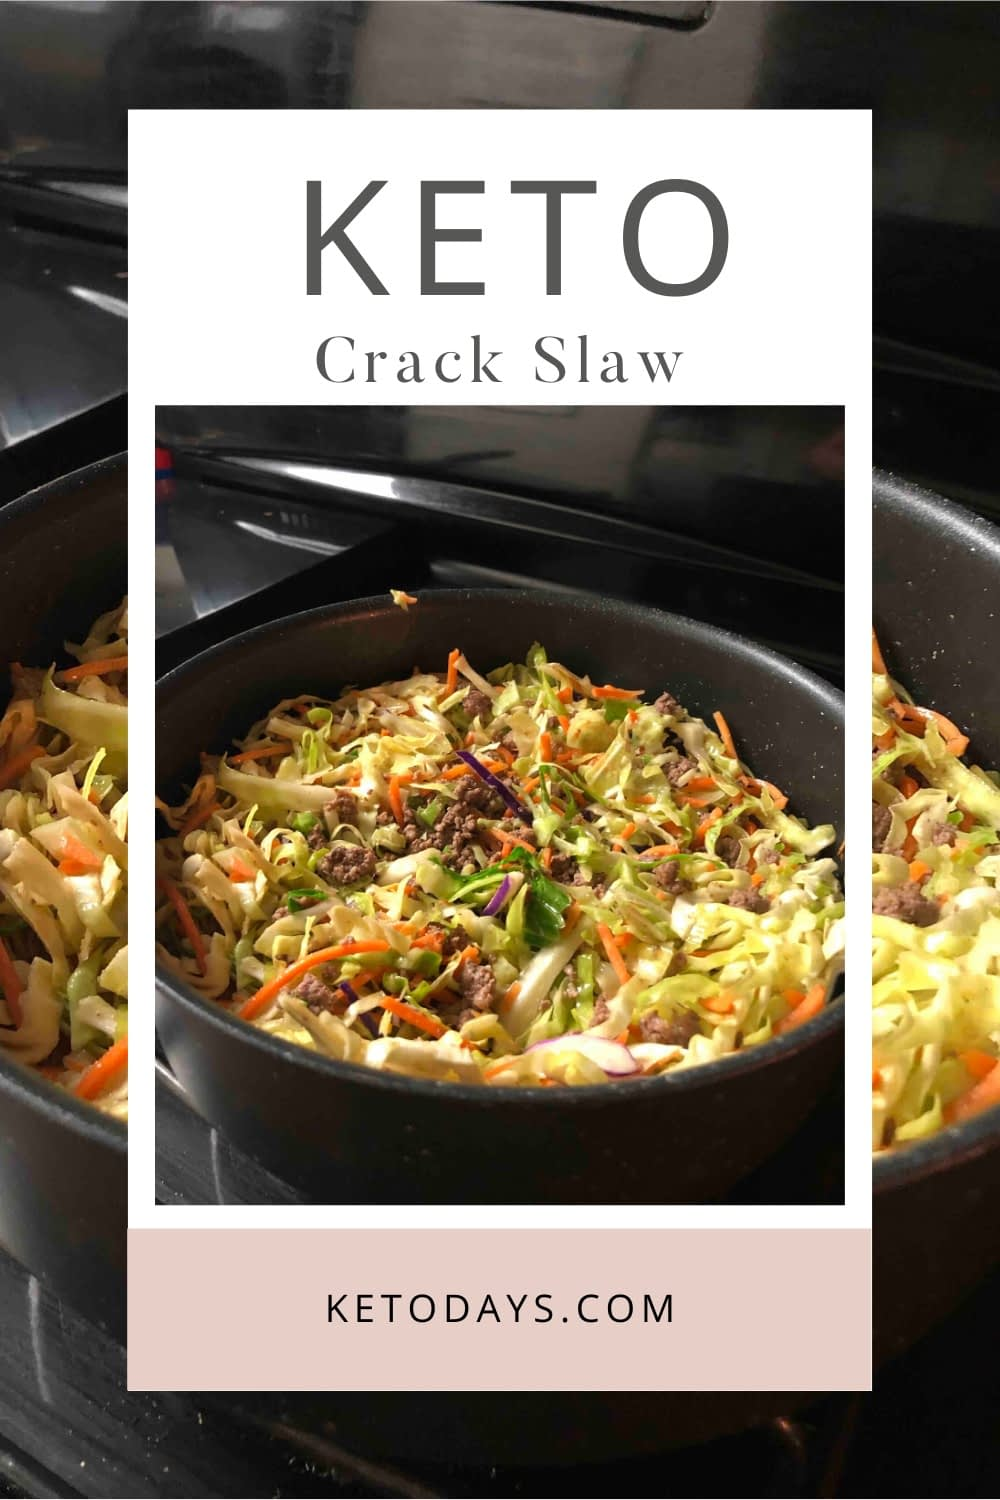 There are many ways to make this Keto dish which is called Crack Slaw recipe or egg roll in a bowl. Add in your favorite ingredients and skip what you don't like.